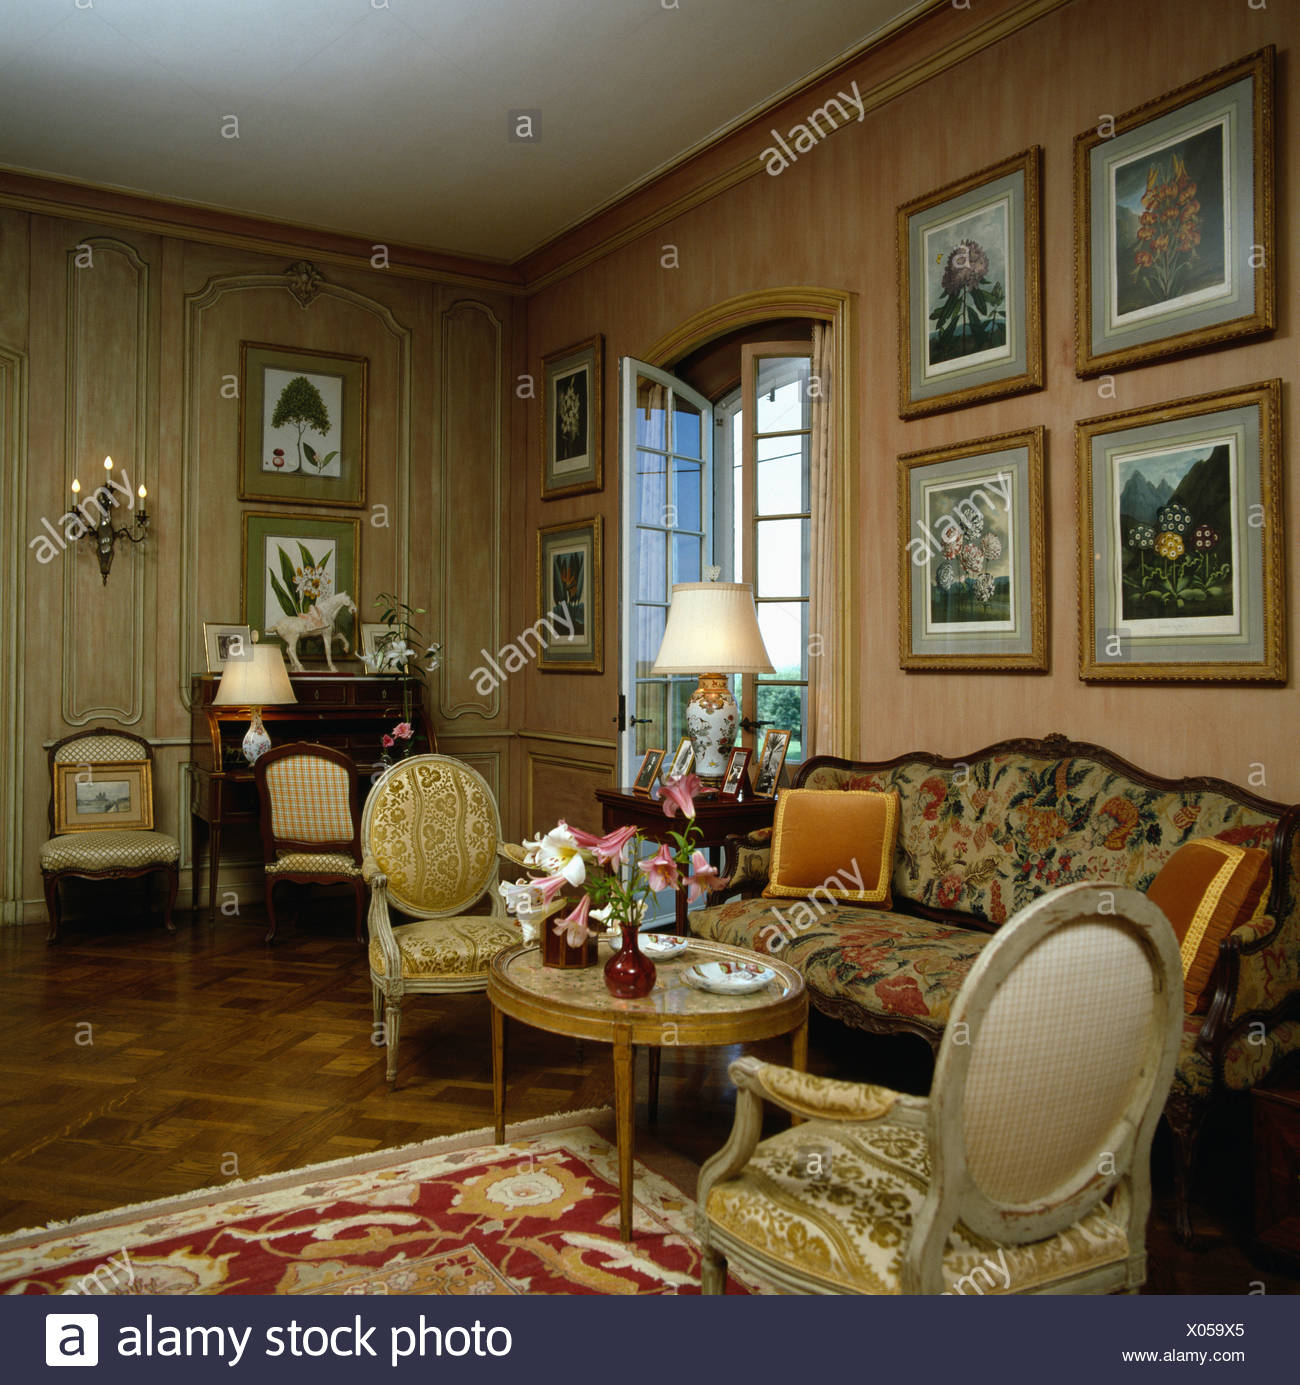 Pictures On Wall Above Patterned Sofa In Drawing Room With French Antique Furniture And Neutral Wallpaper Stock Photo Alamy